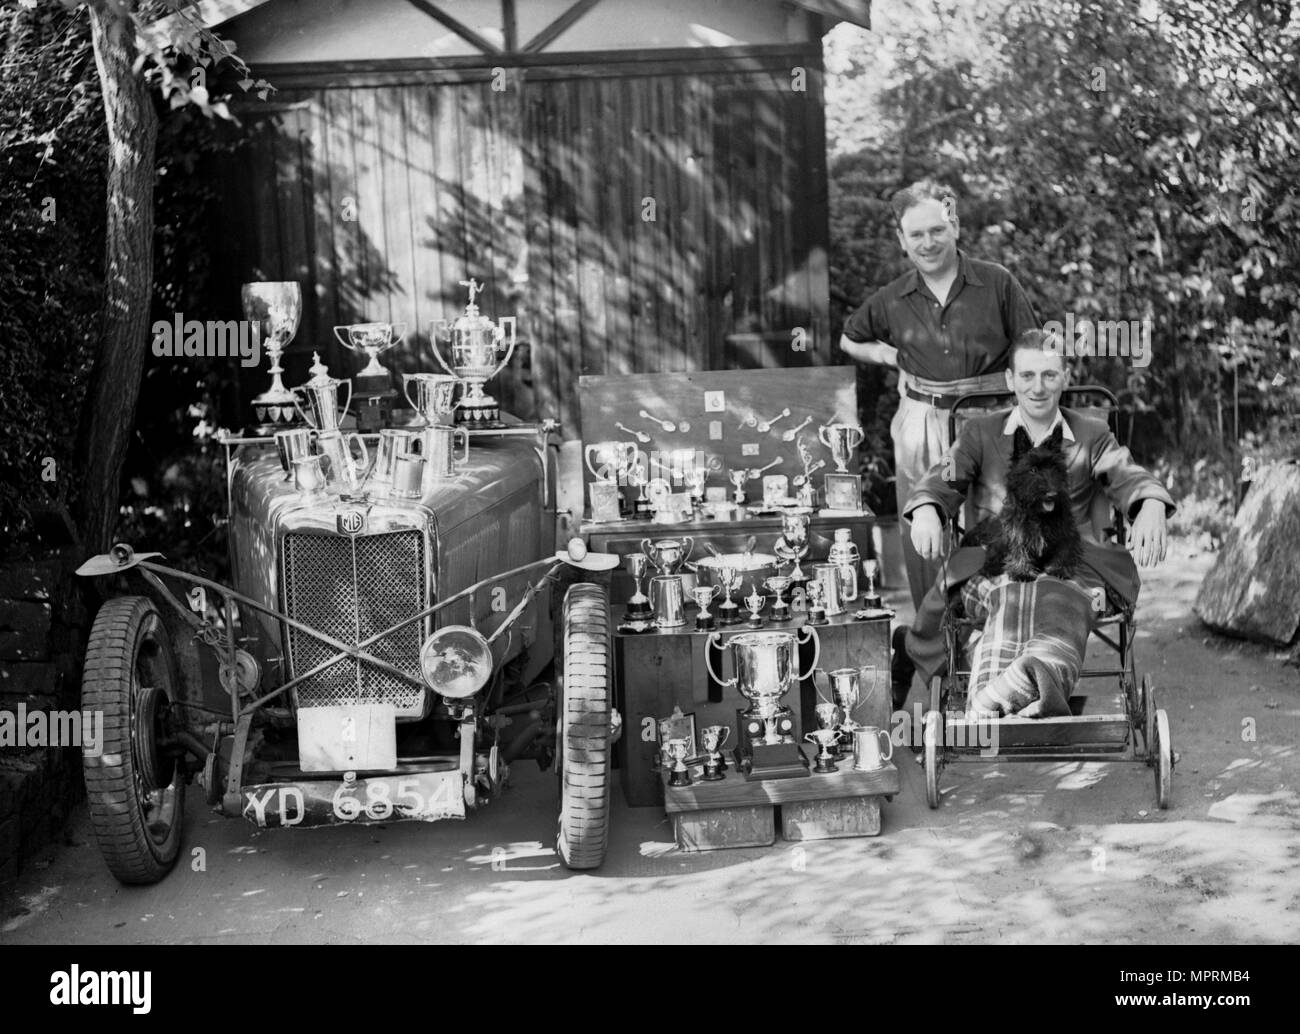 PS Flower with a MG J2 and motoring trophies, 1930s. Artist: Bill Brunell. - Stock Image